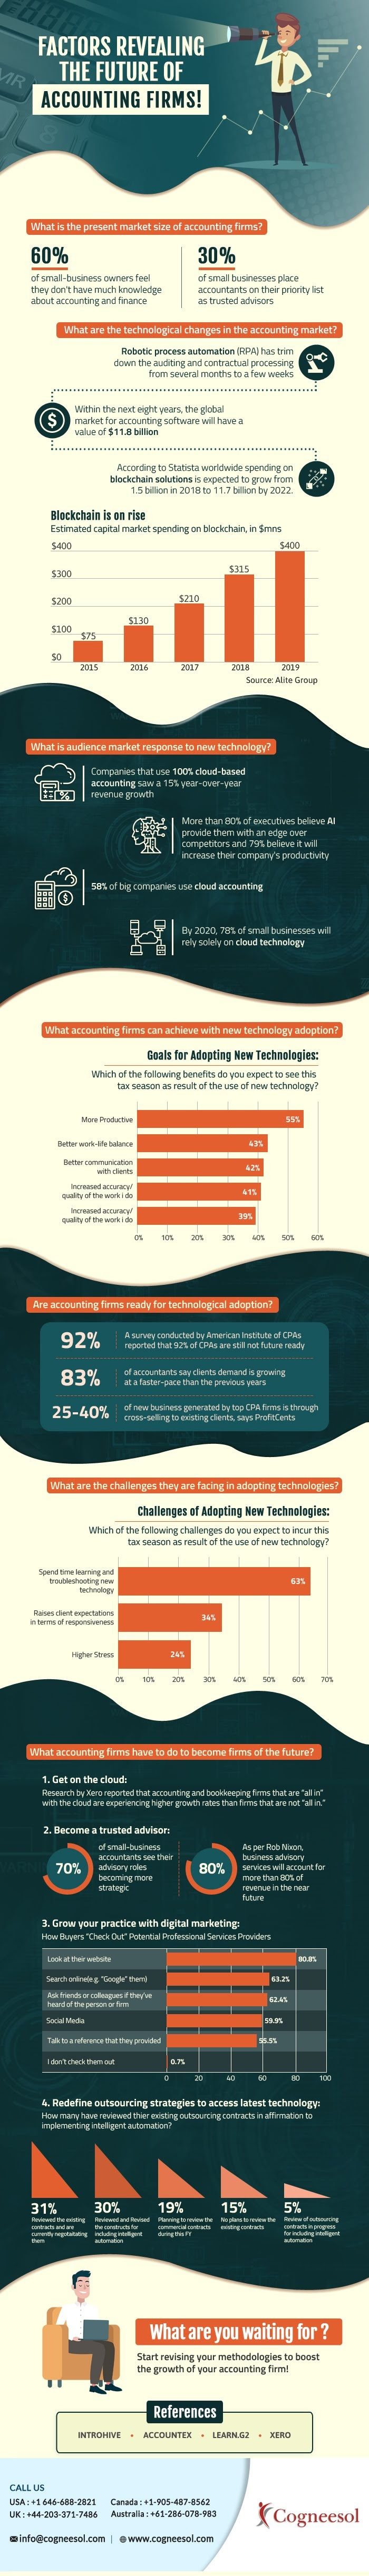 Factors Revealing the Future of Accounting Firms! #infographic